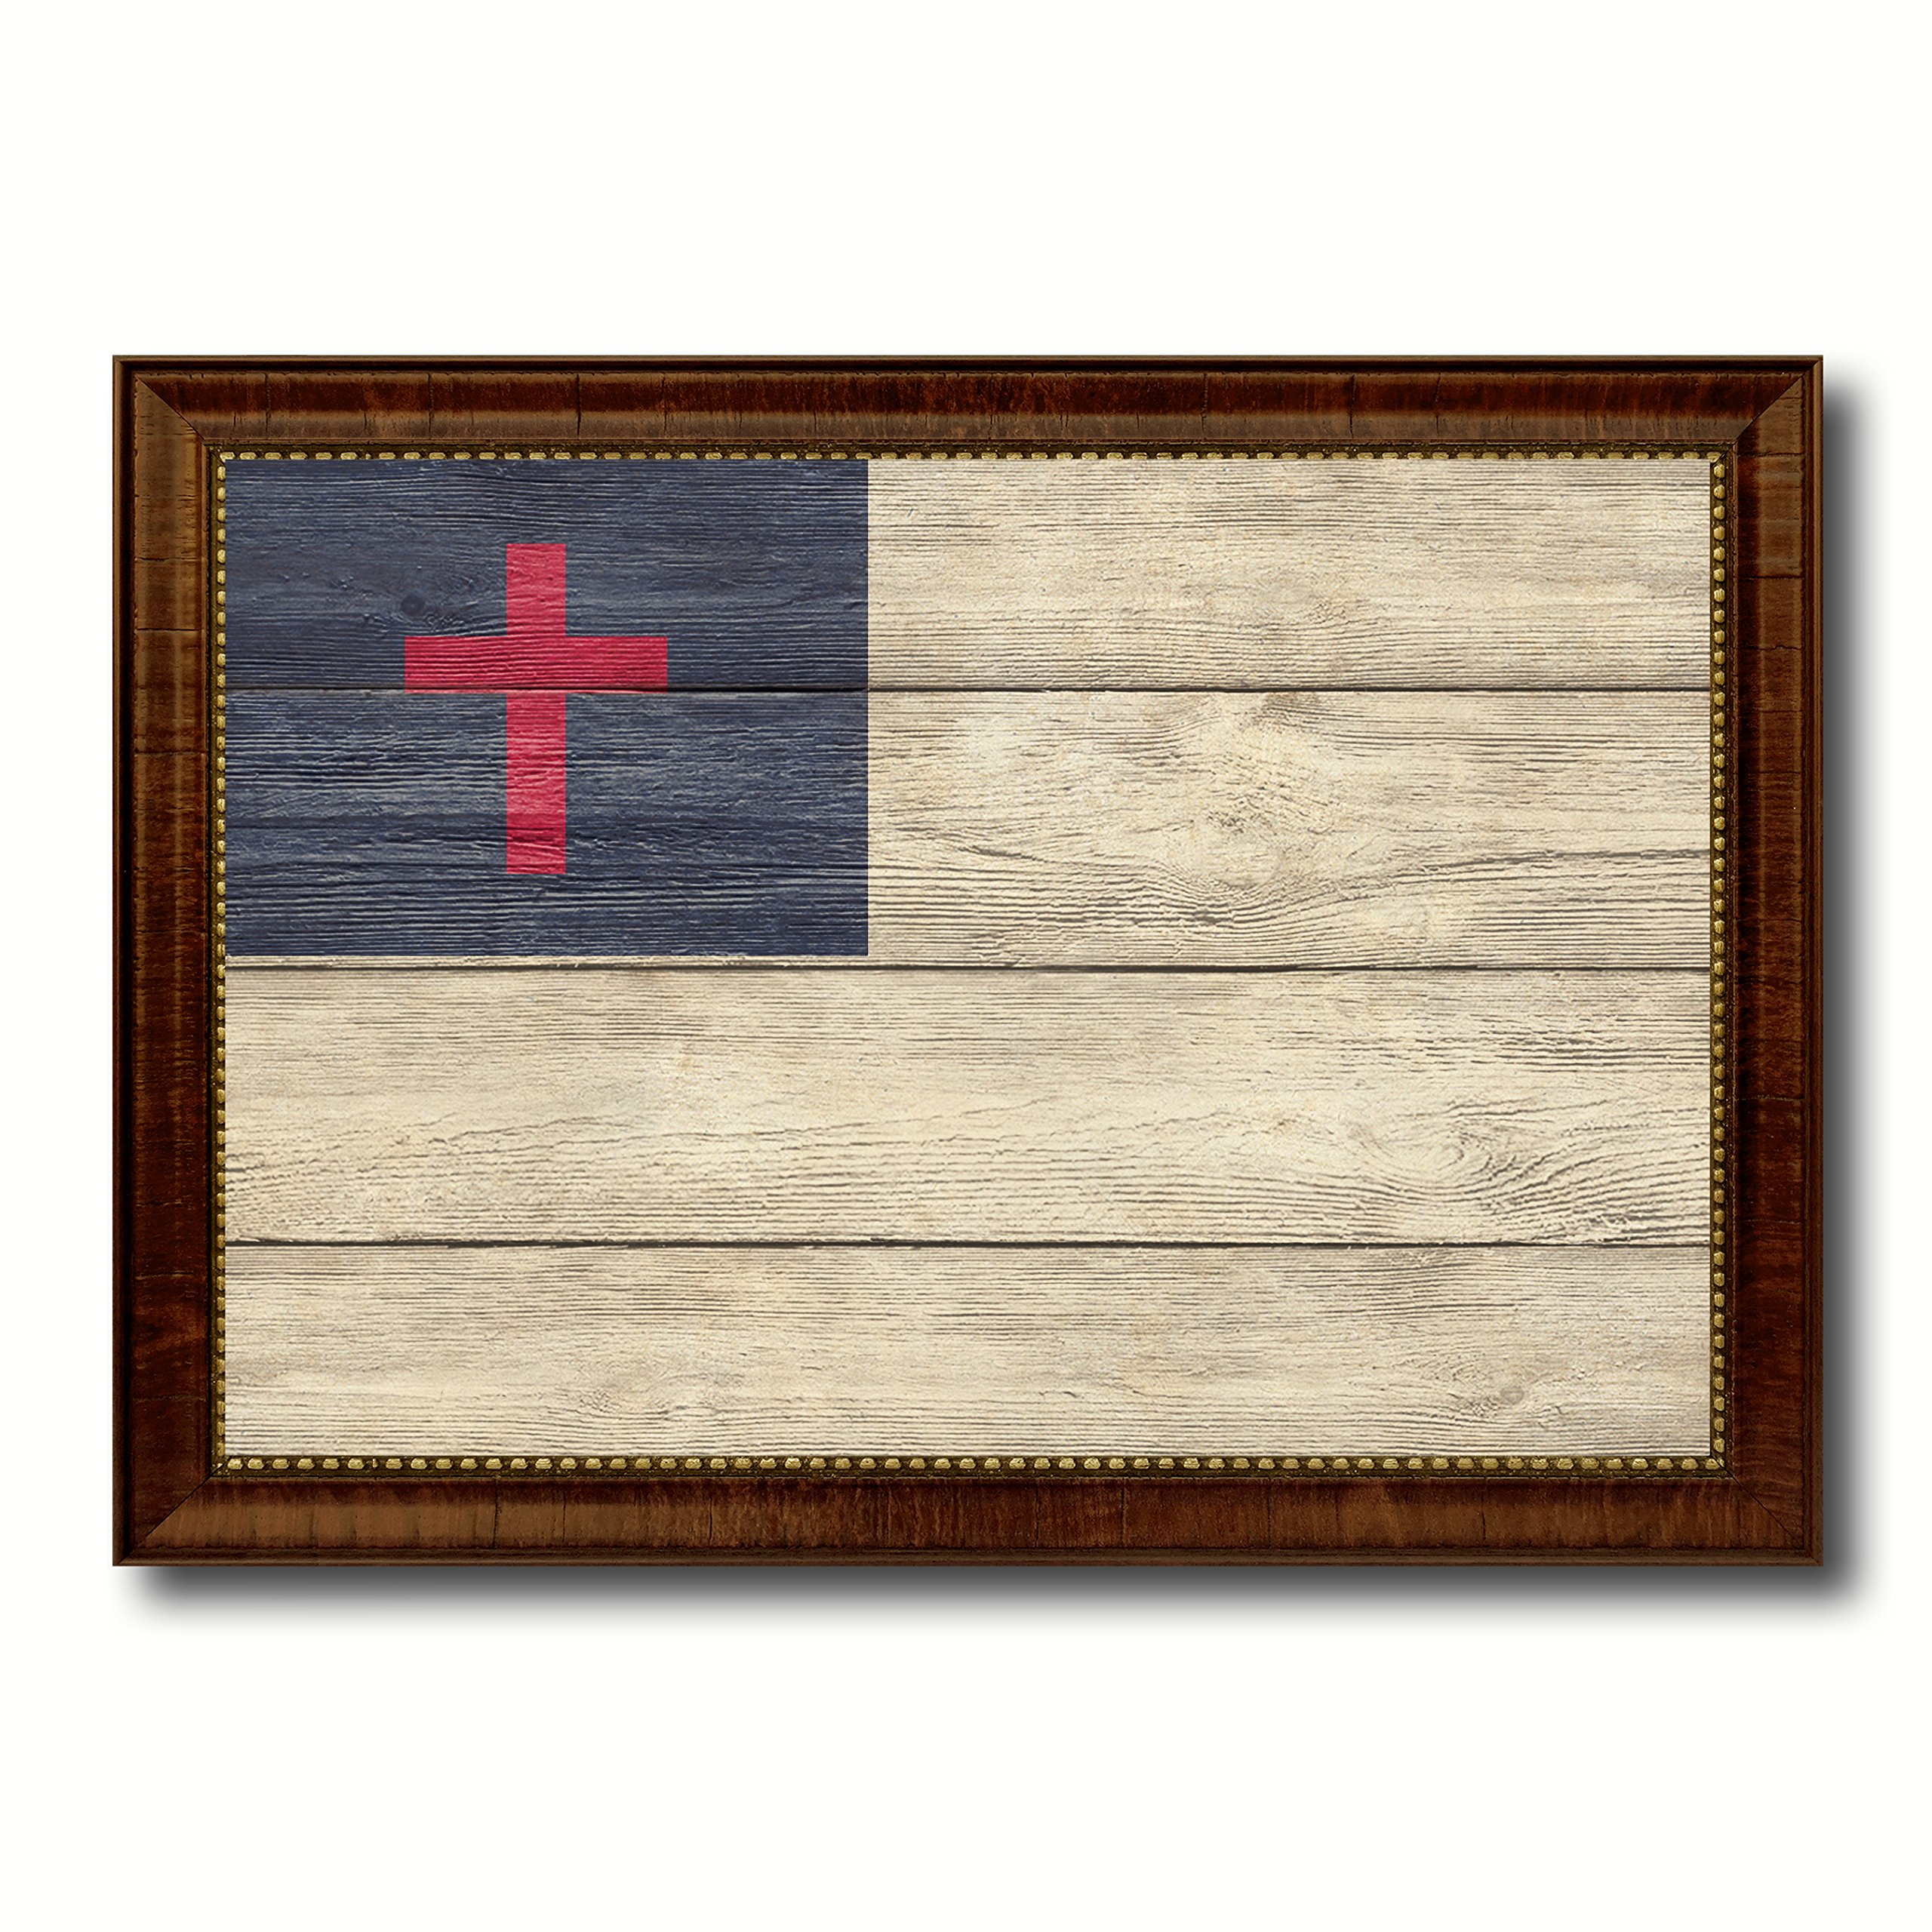 Kayso Christian Religious Military Flag Texture Canvas Print Brown Picture Frame Home Decor Wall Art Decoration Gift Ideas Signs 27''X39'' by SpotColorArt